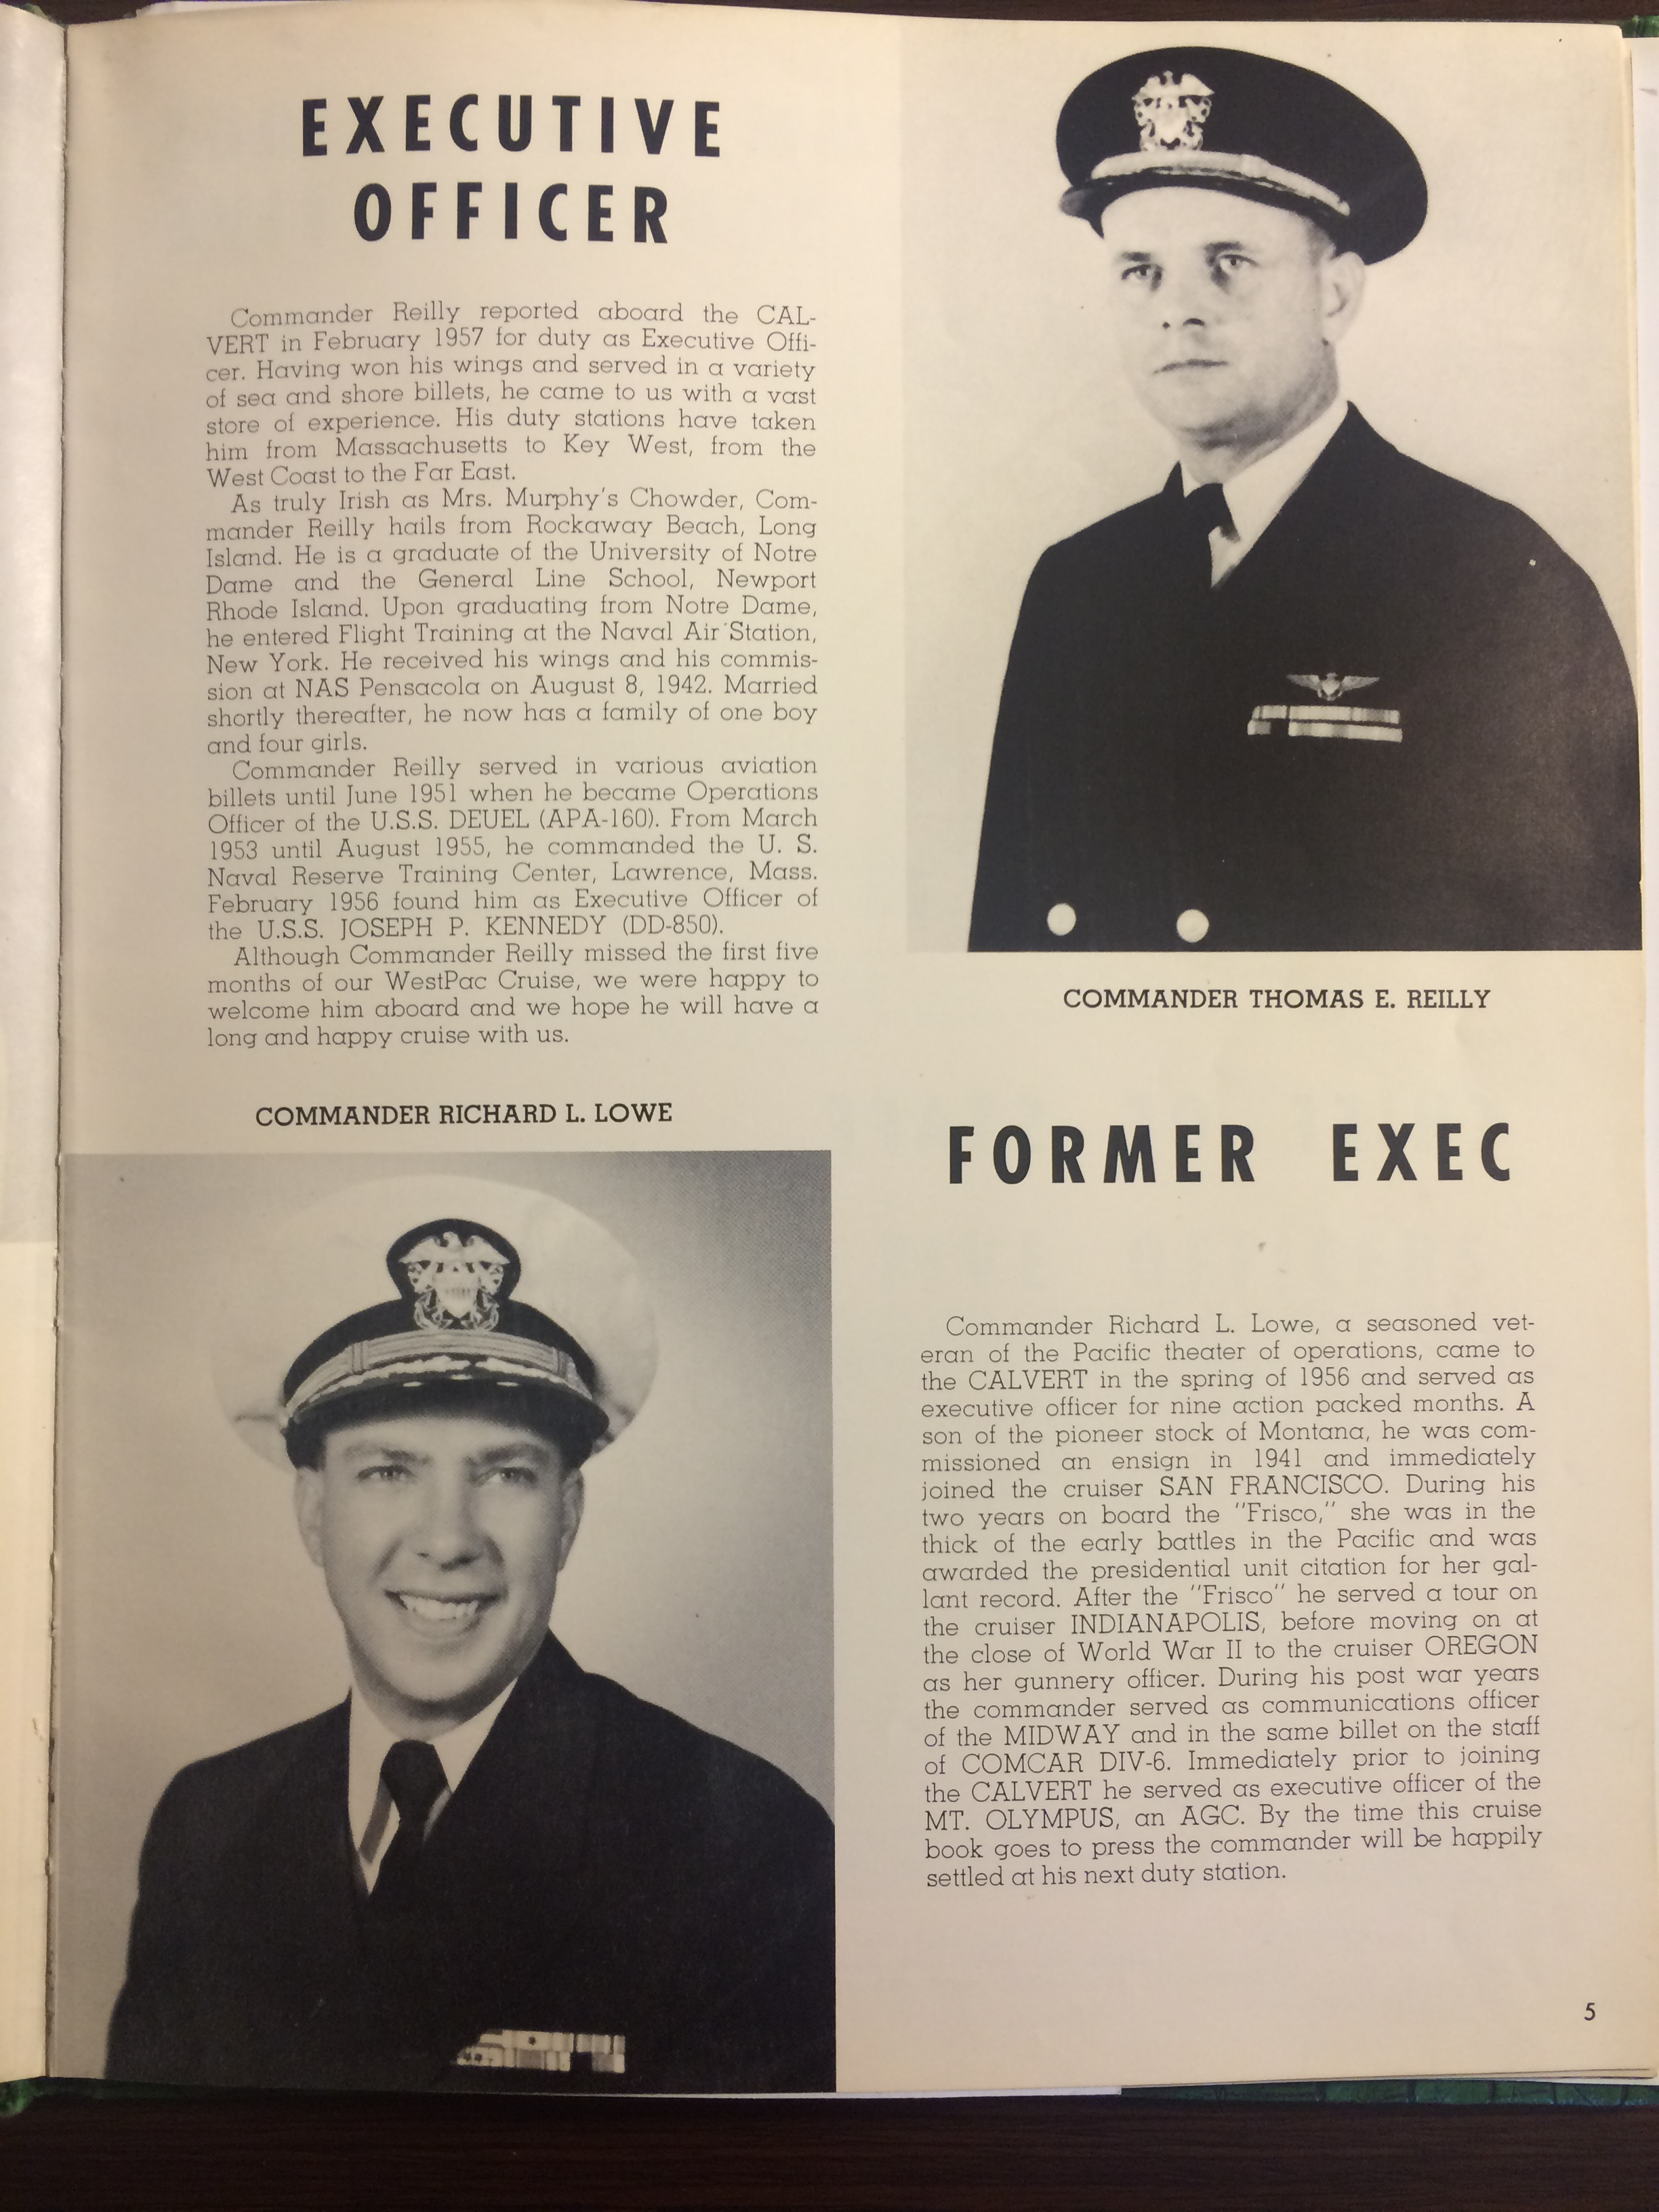 USS Calvert 1956 - Sixth Far East Cruise Book - 004